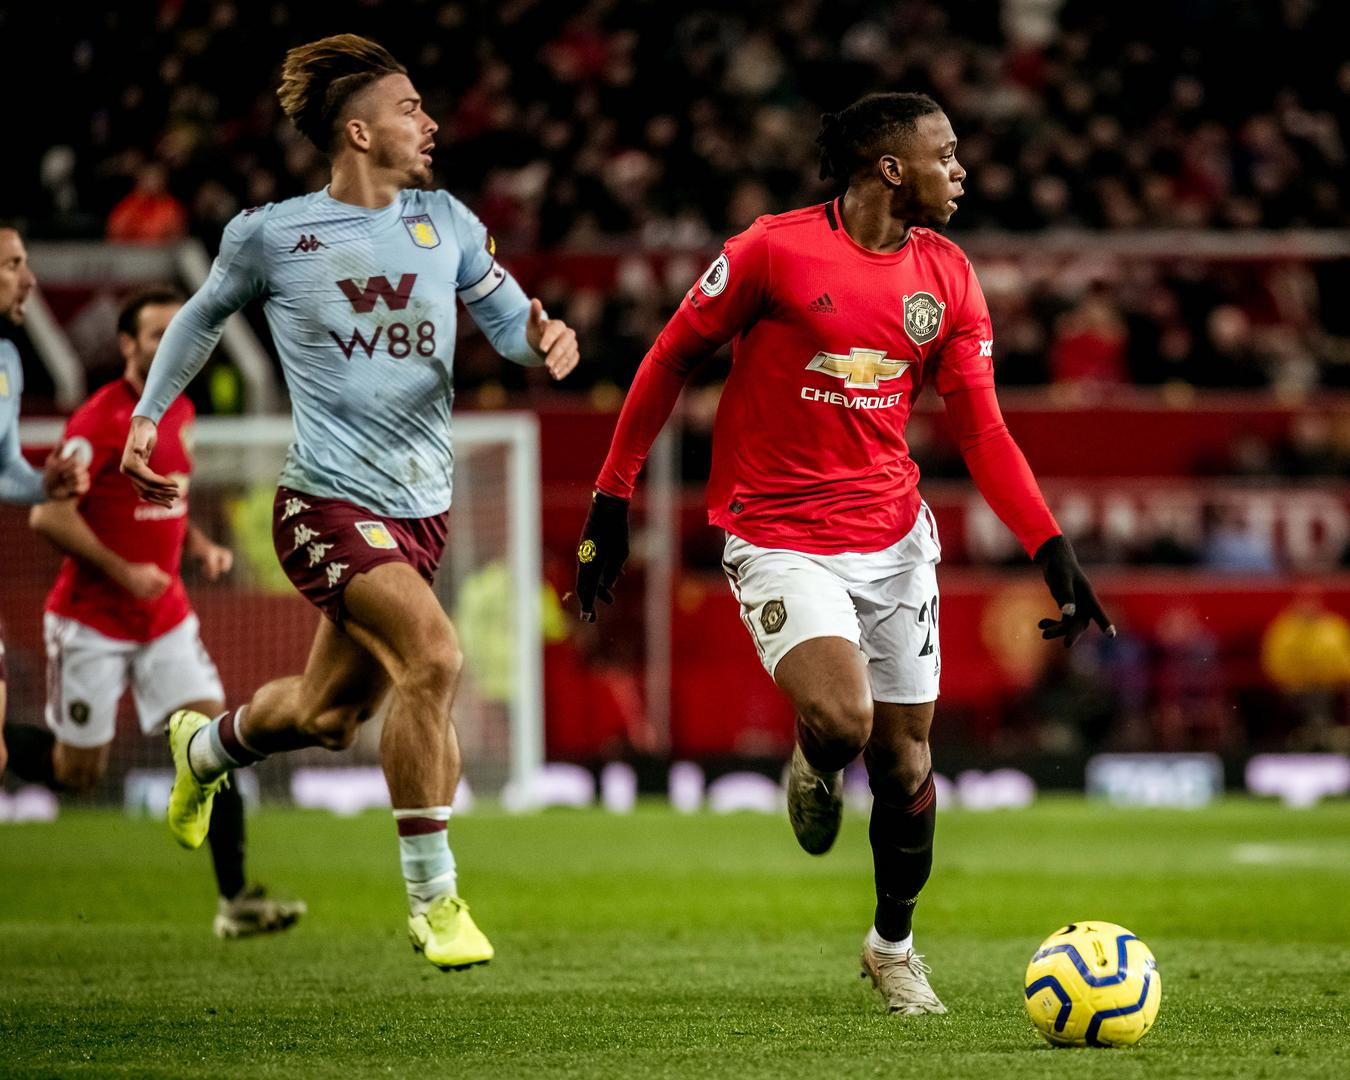 Aston Villa's Jack Grealish and Manchester United's Aaron Wan-Bissaka